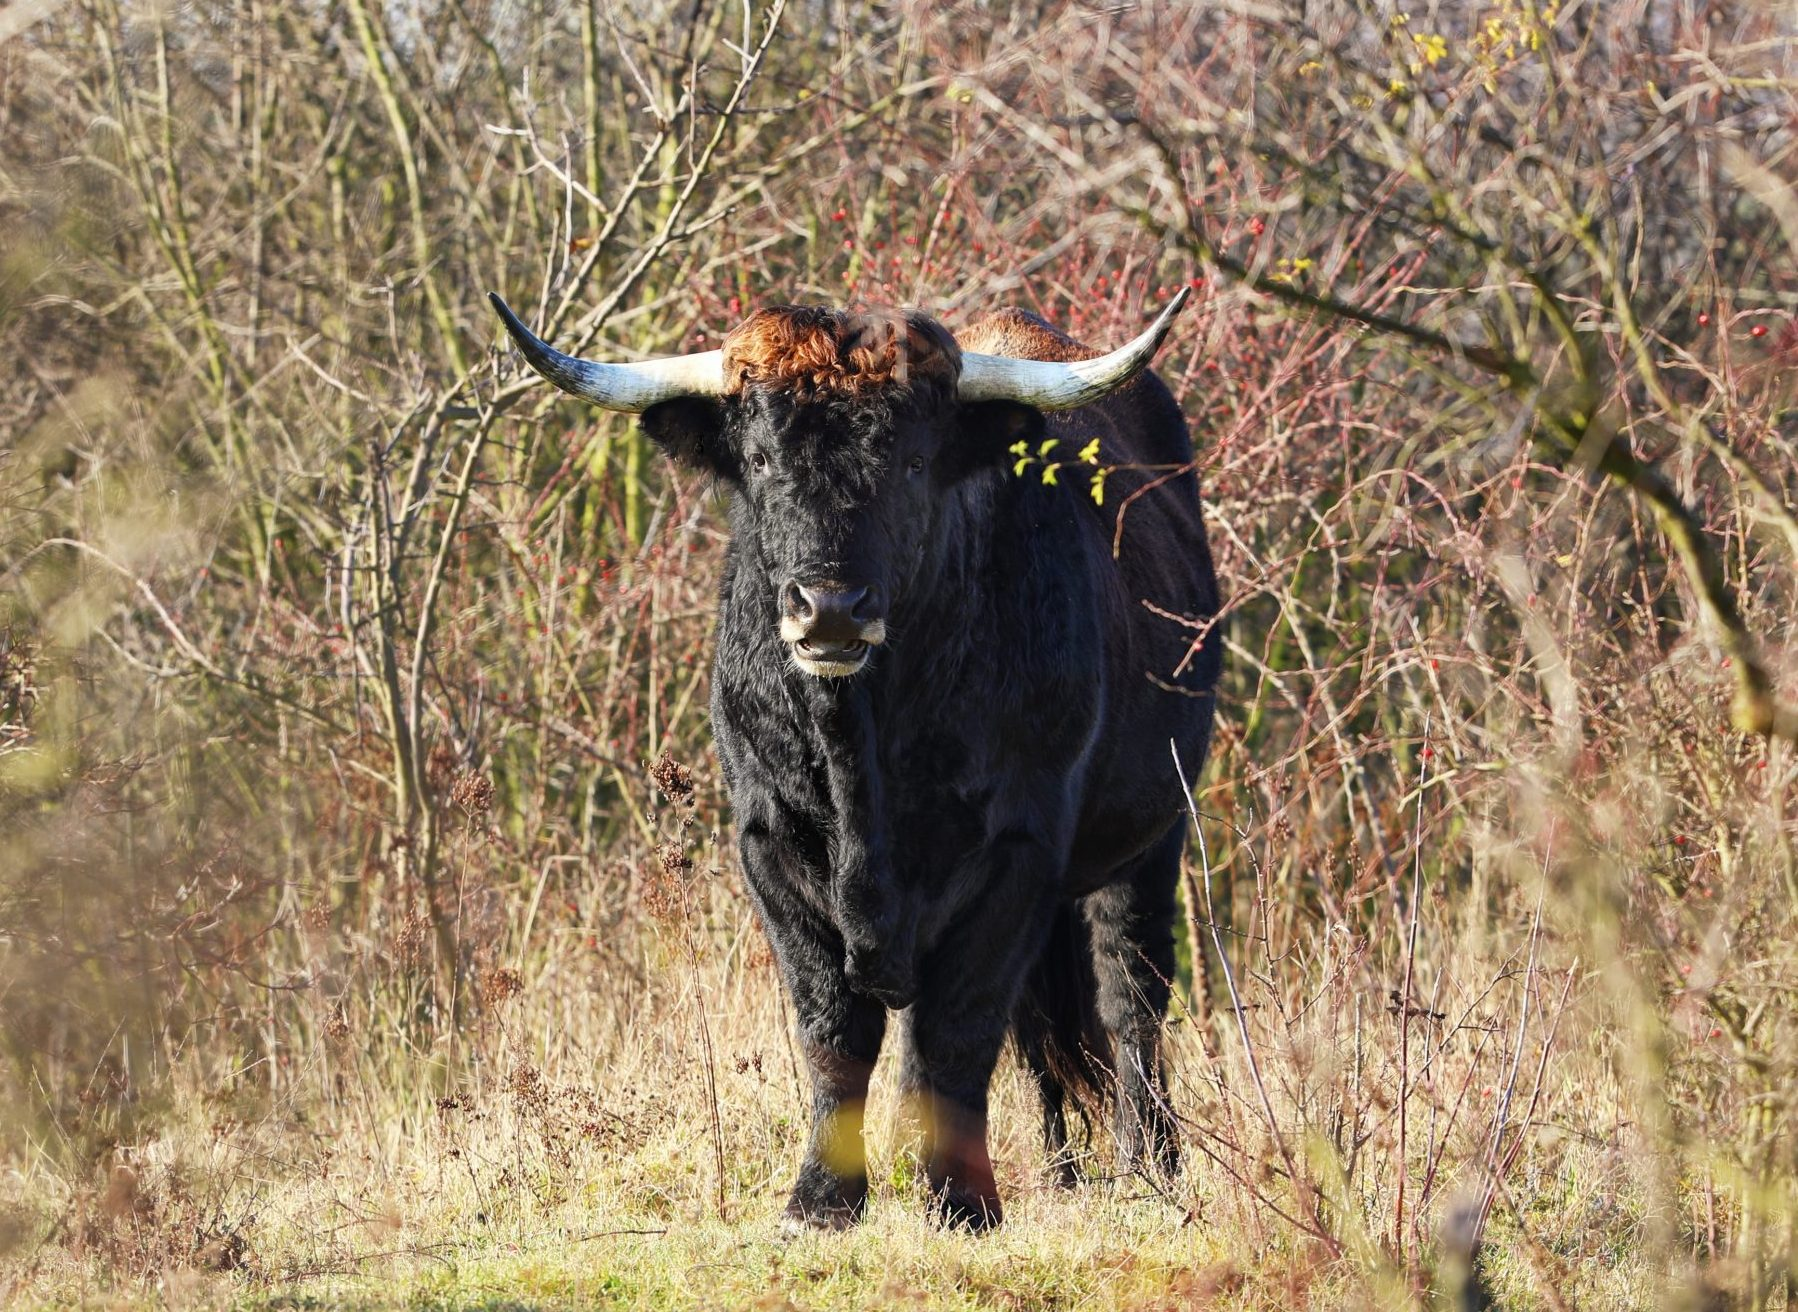 Tauros Programme started ecological restoration and rewilding of Aurochs - Bos primigenius